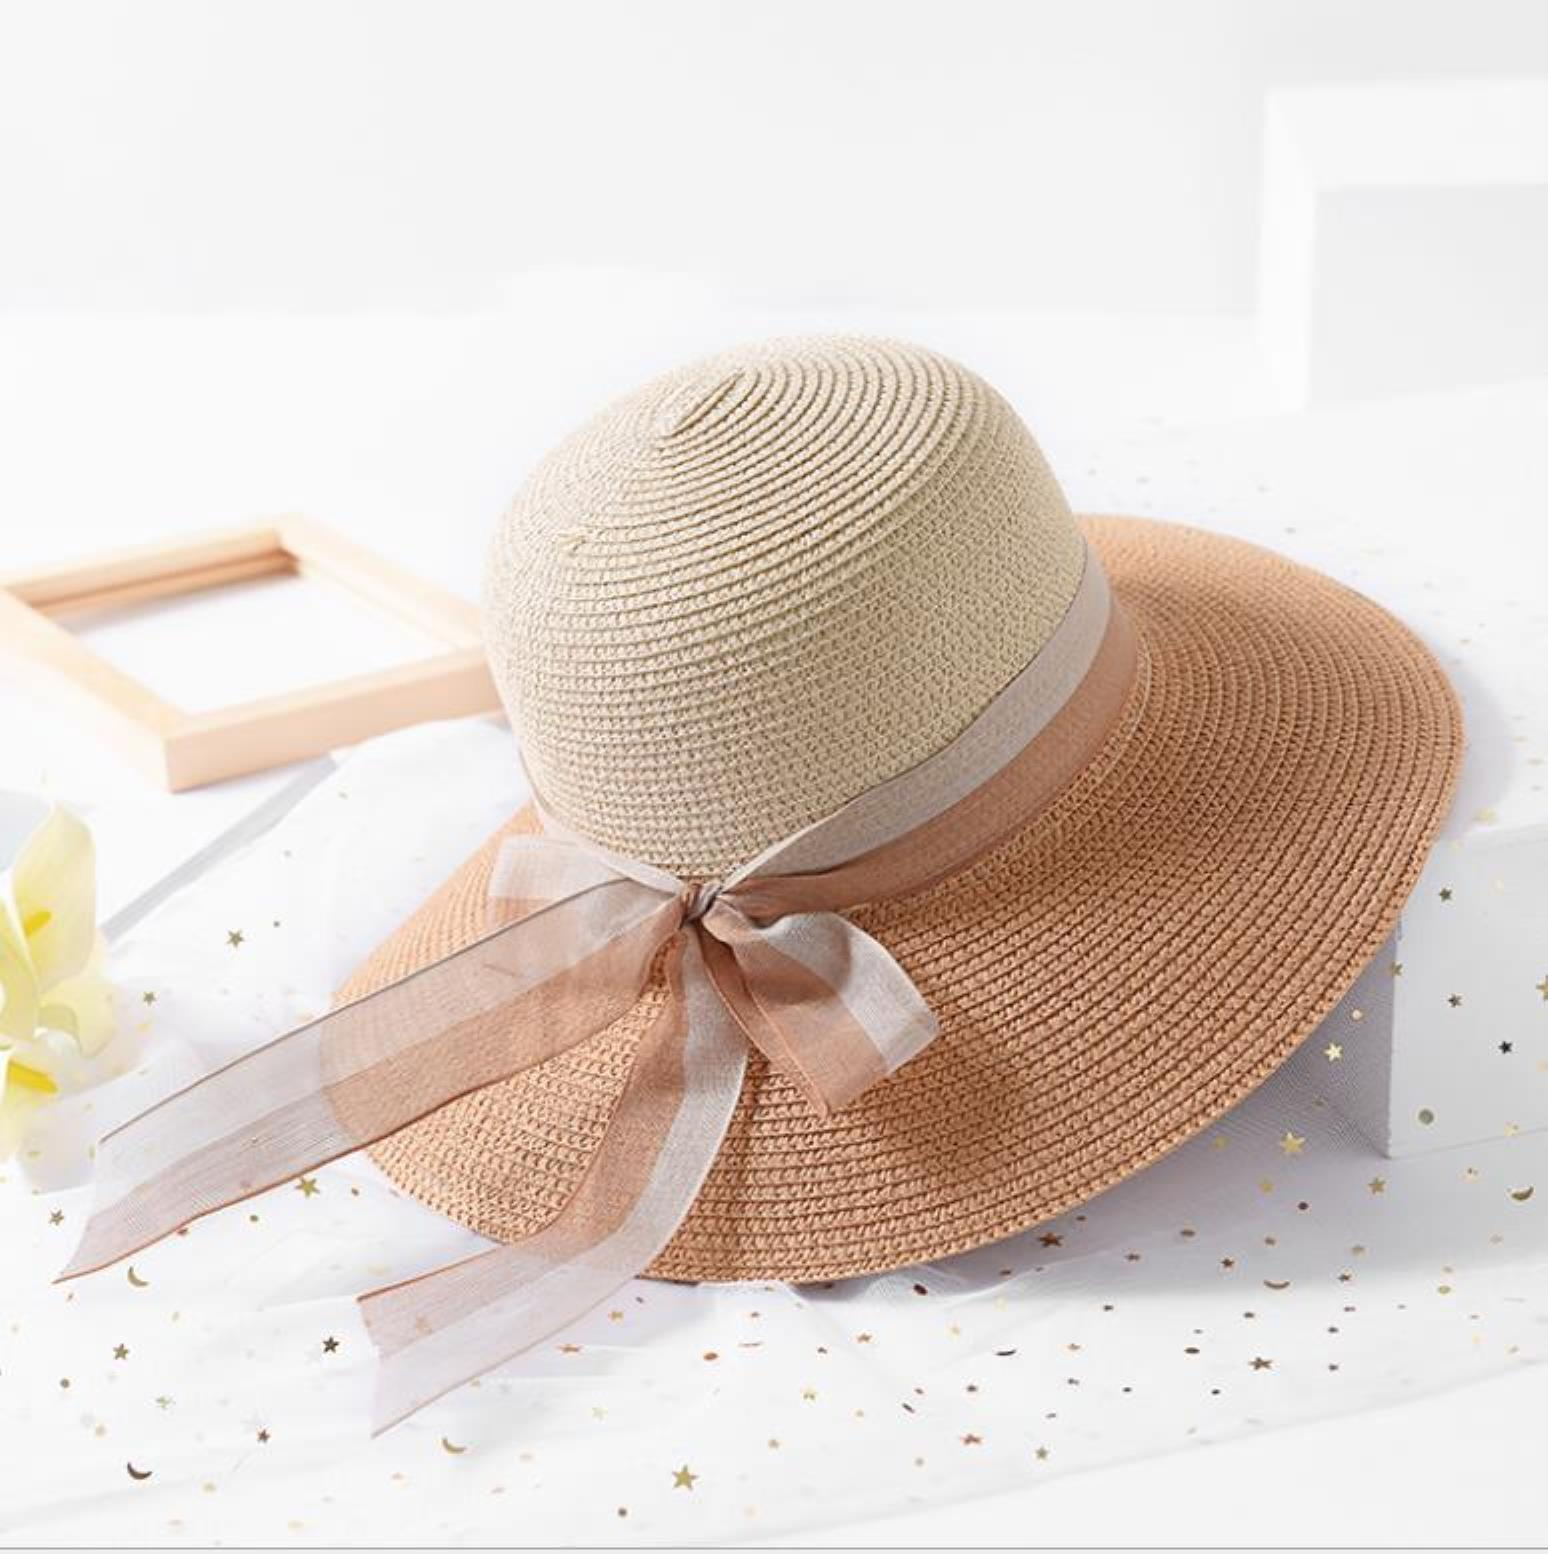 Caps Hats, Scarves & Gloves Fashion Aessories Women Sun Hats Hand Made St Female Bow-Knot Wide Brim Beach Hat Casual Summer Cap1 Drop